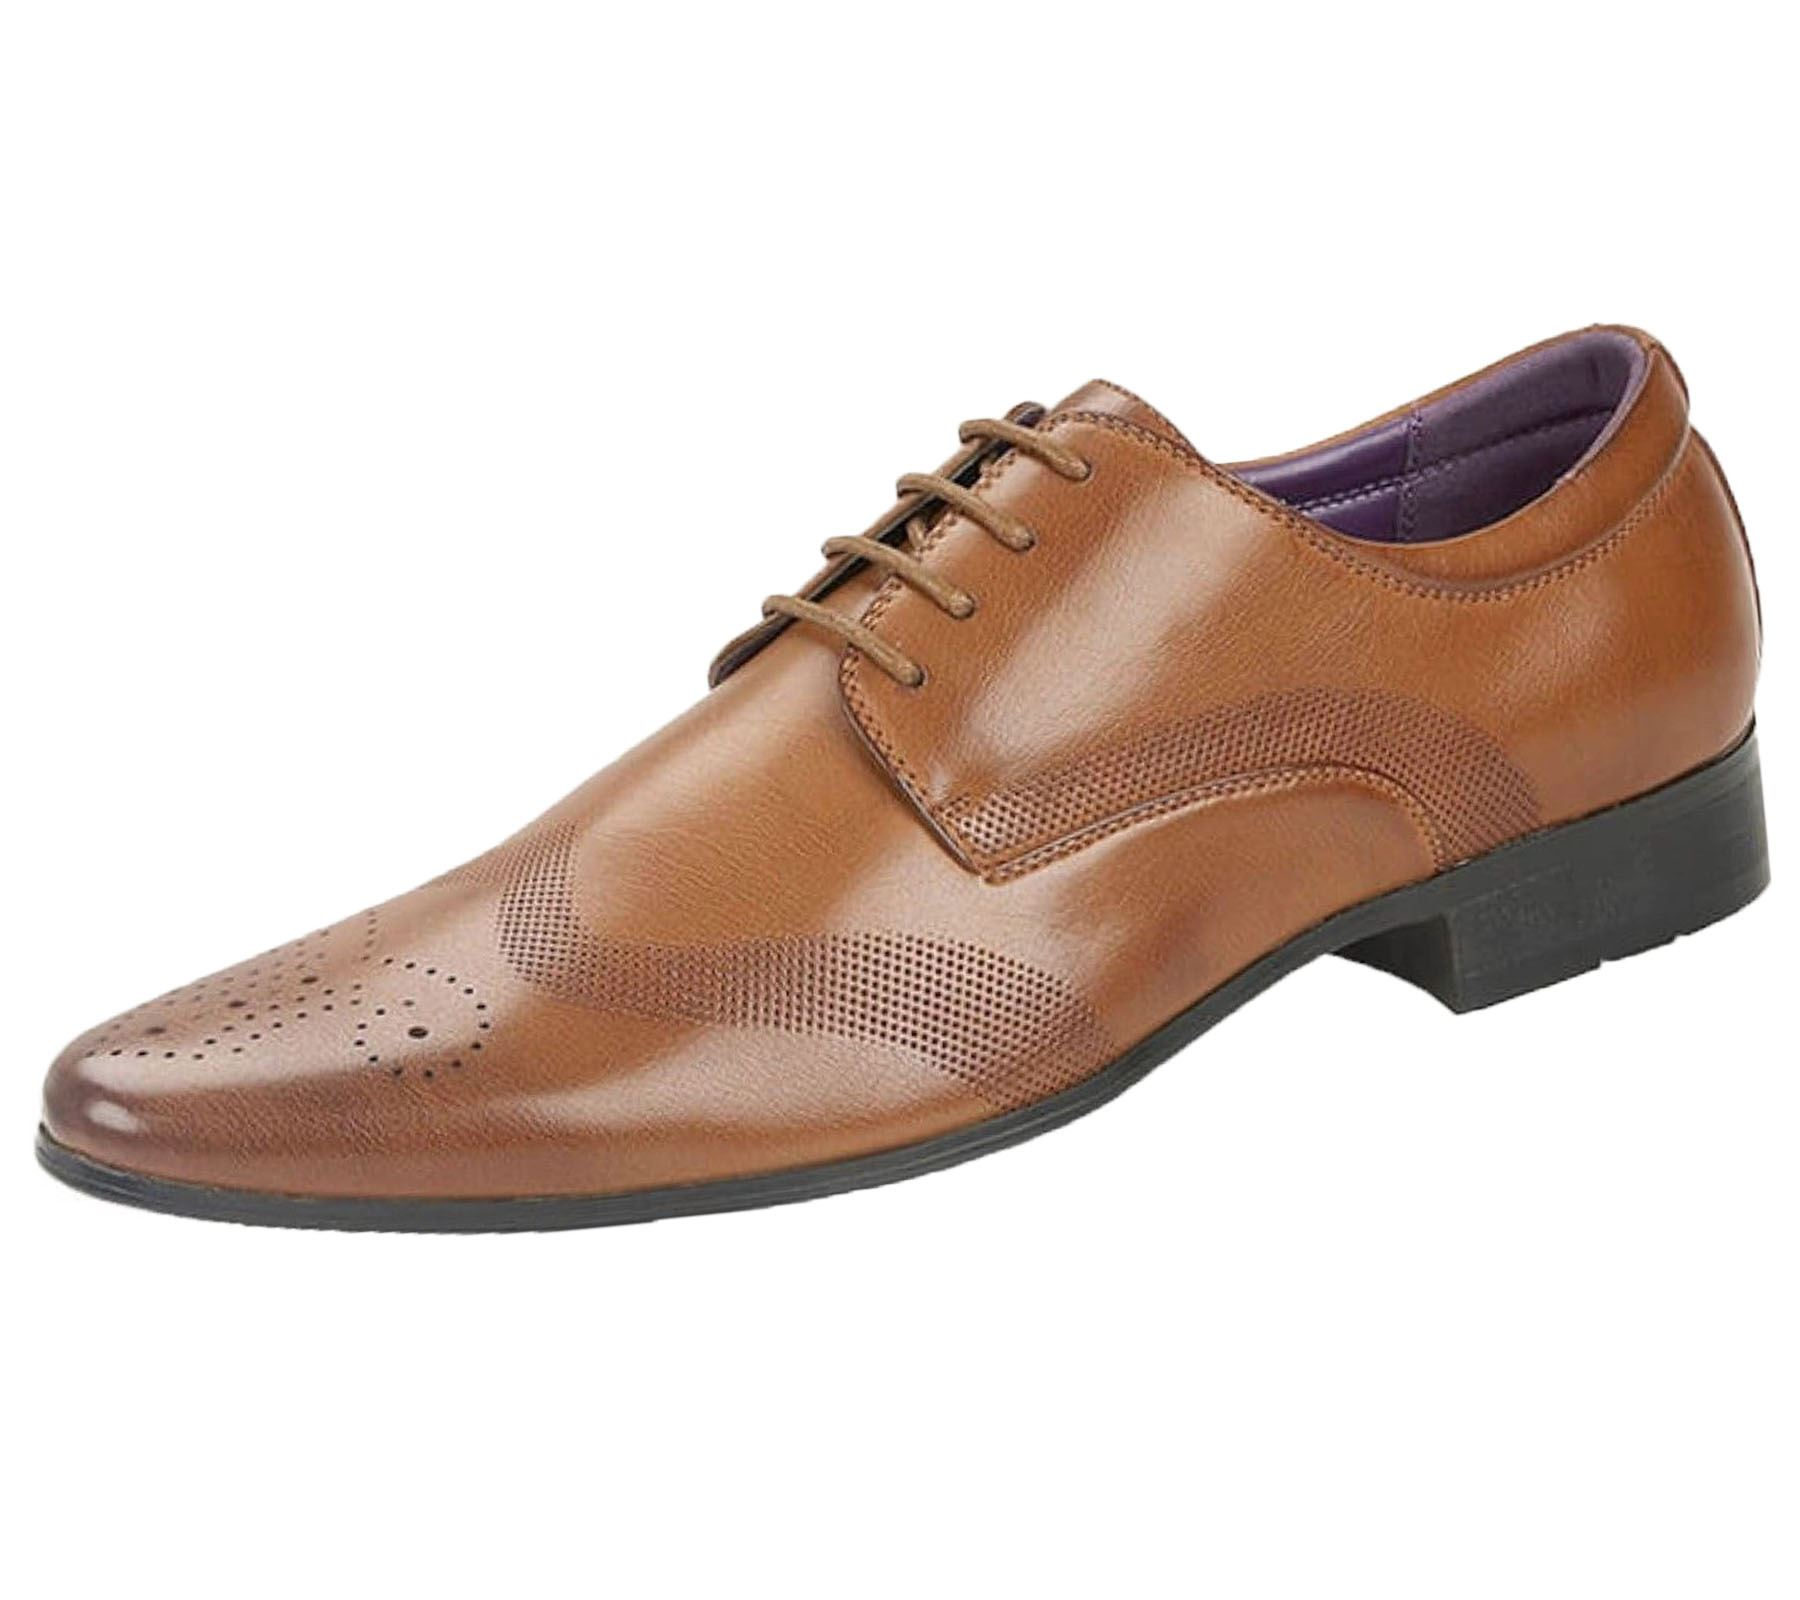 Mens-Brogues-Shoes-Office-Wedding-Formal-Smart-Dress-Shoes-New-Size miniatura 23